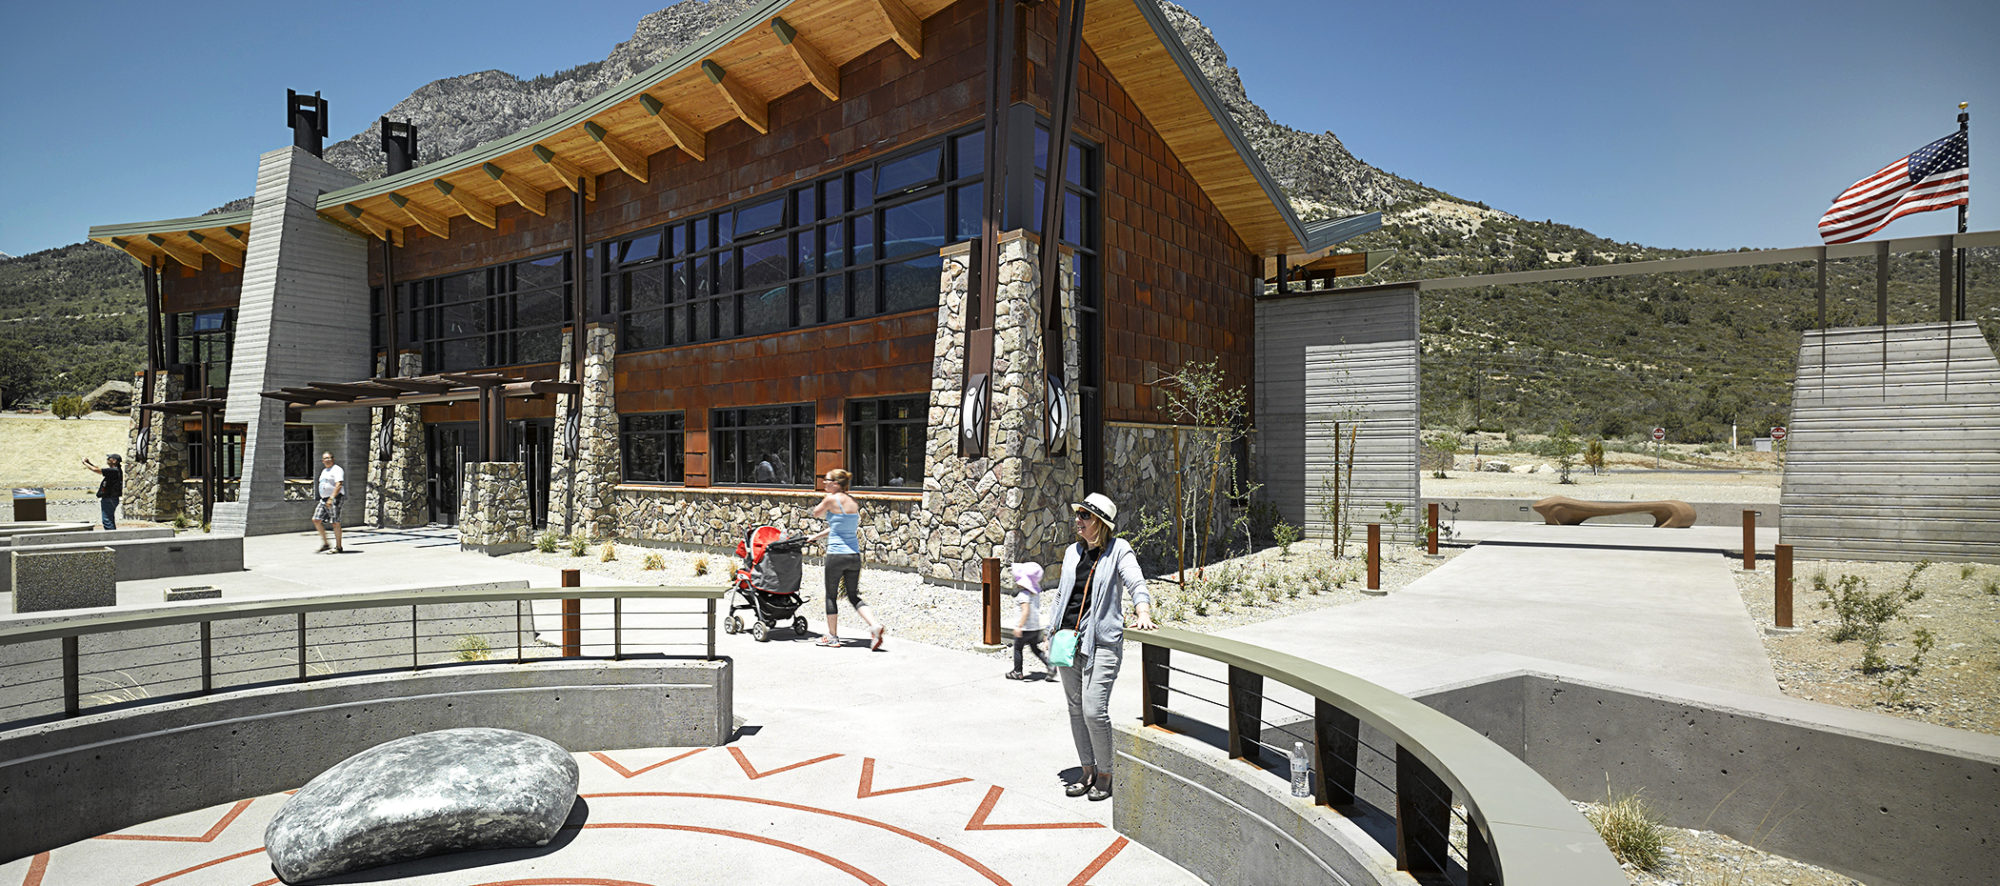 The exhibit circle of the Spring Mountains Visitor Gateway, masterplan and design by LGA Architecture.